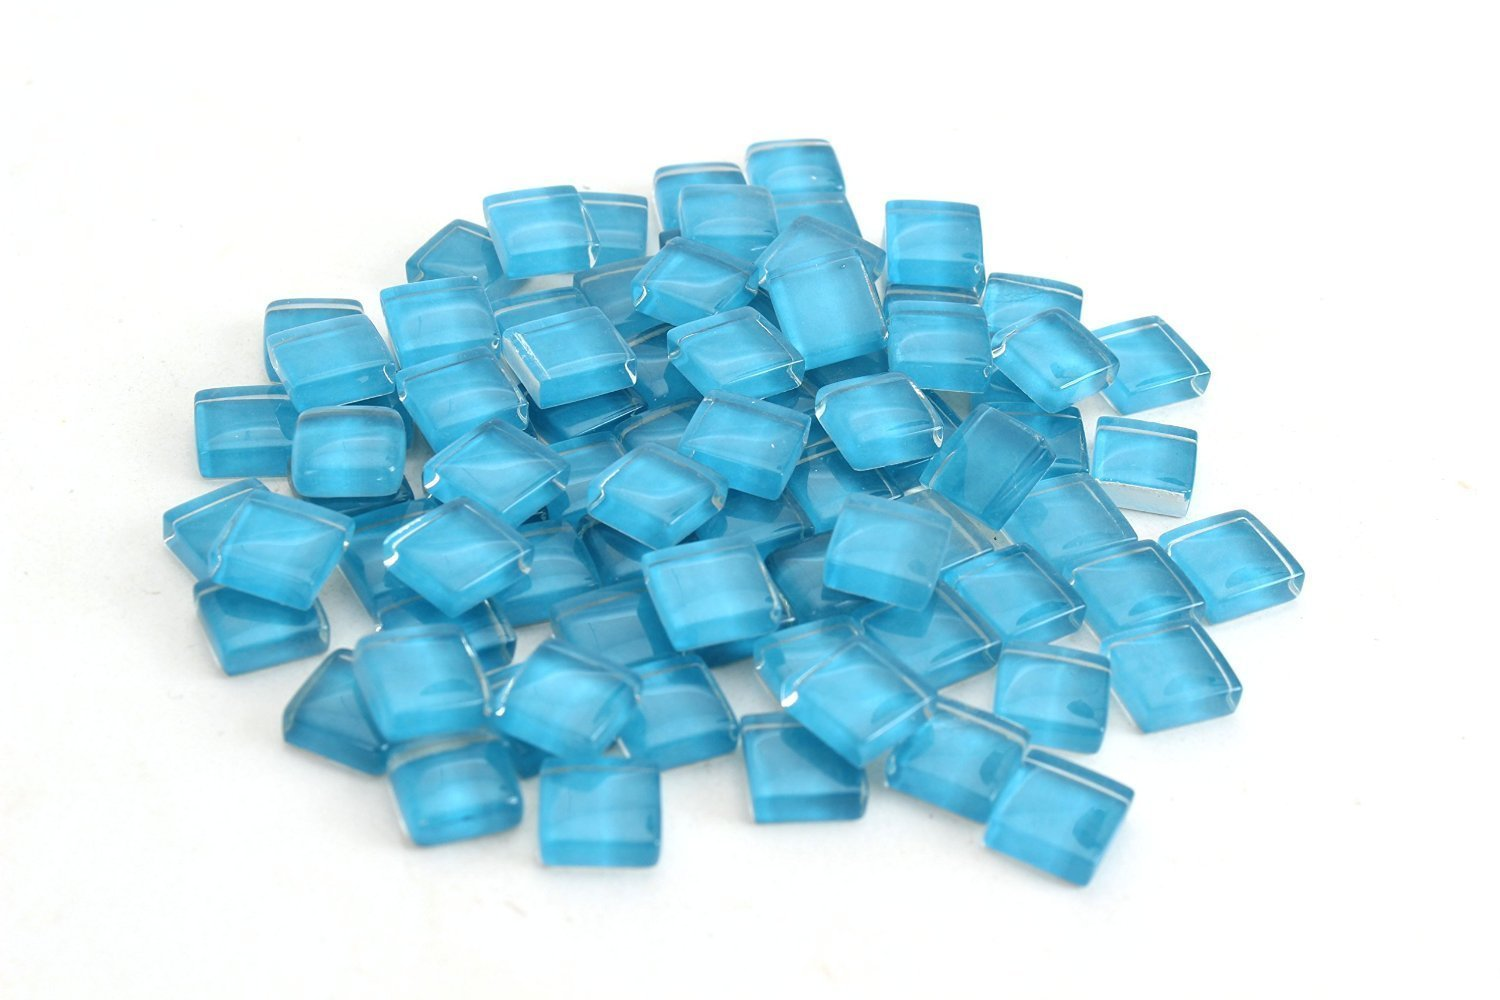 Milltown Merchants 4/10 Inch (10mm) Blue Crystal Glass Mosaic Tile, 3 Pound (48 oz) Bulk Assortment of Mosaic Tiles by Milltown Merchants